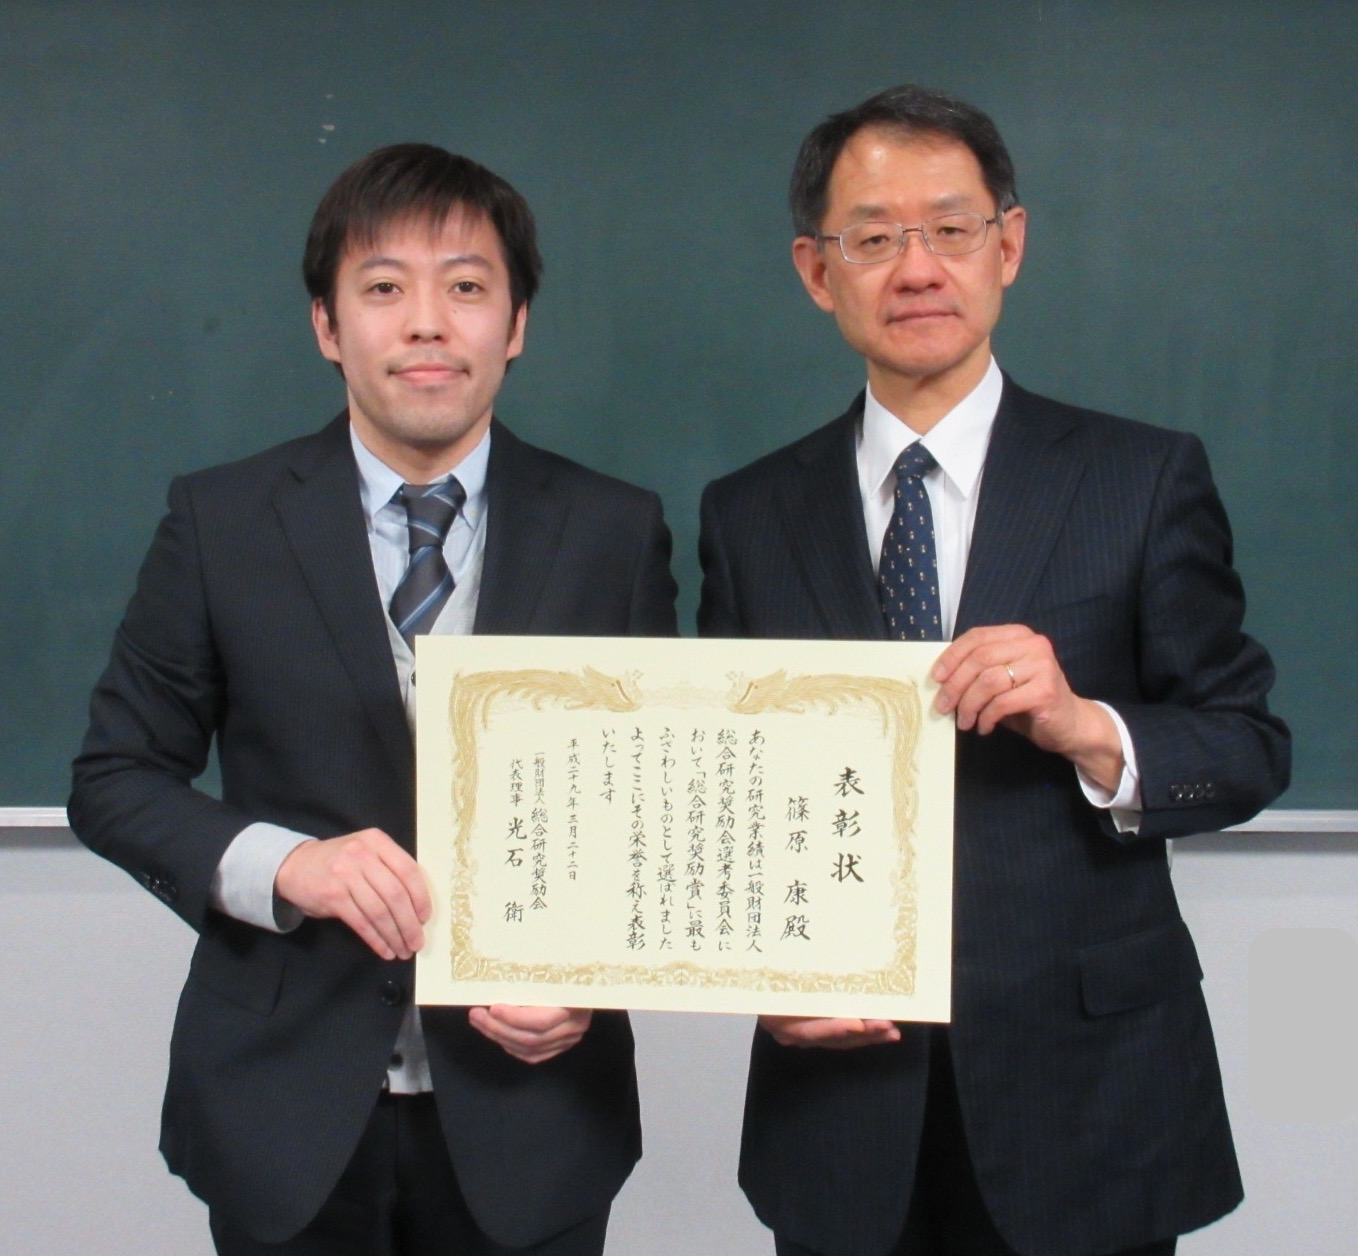 image for Dr. Yasushi Shinohara received an award!